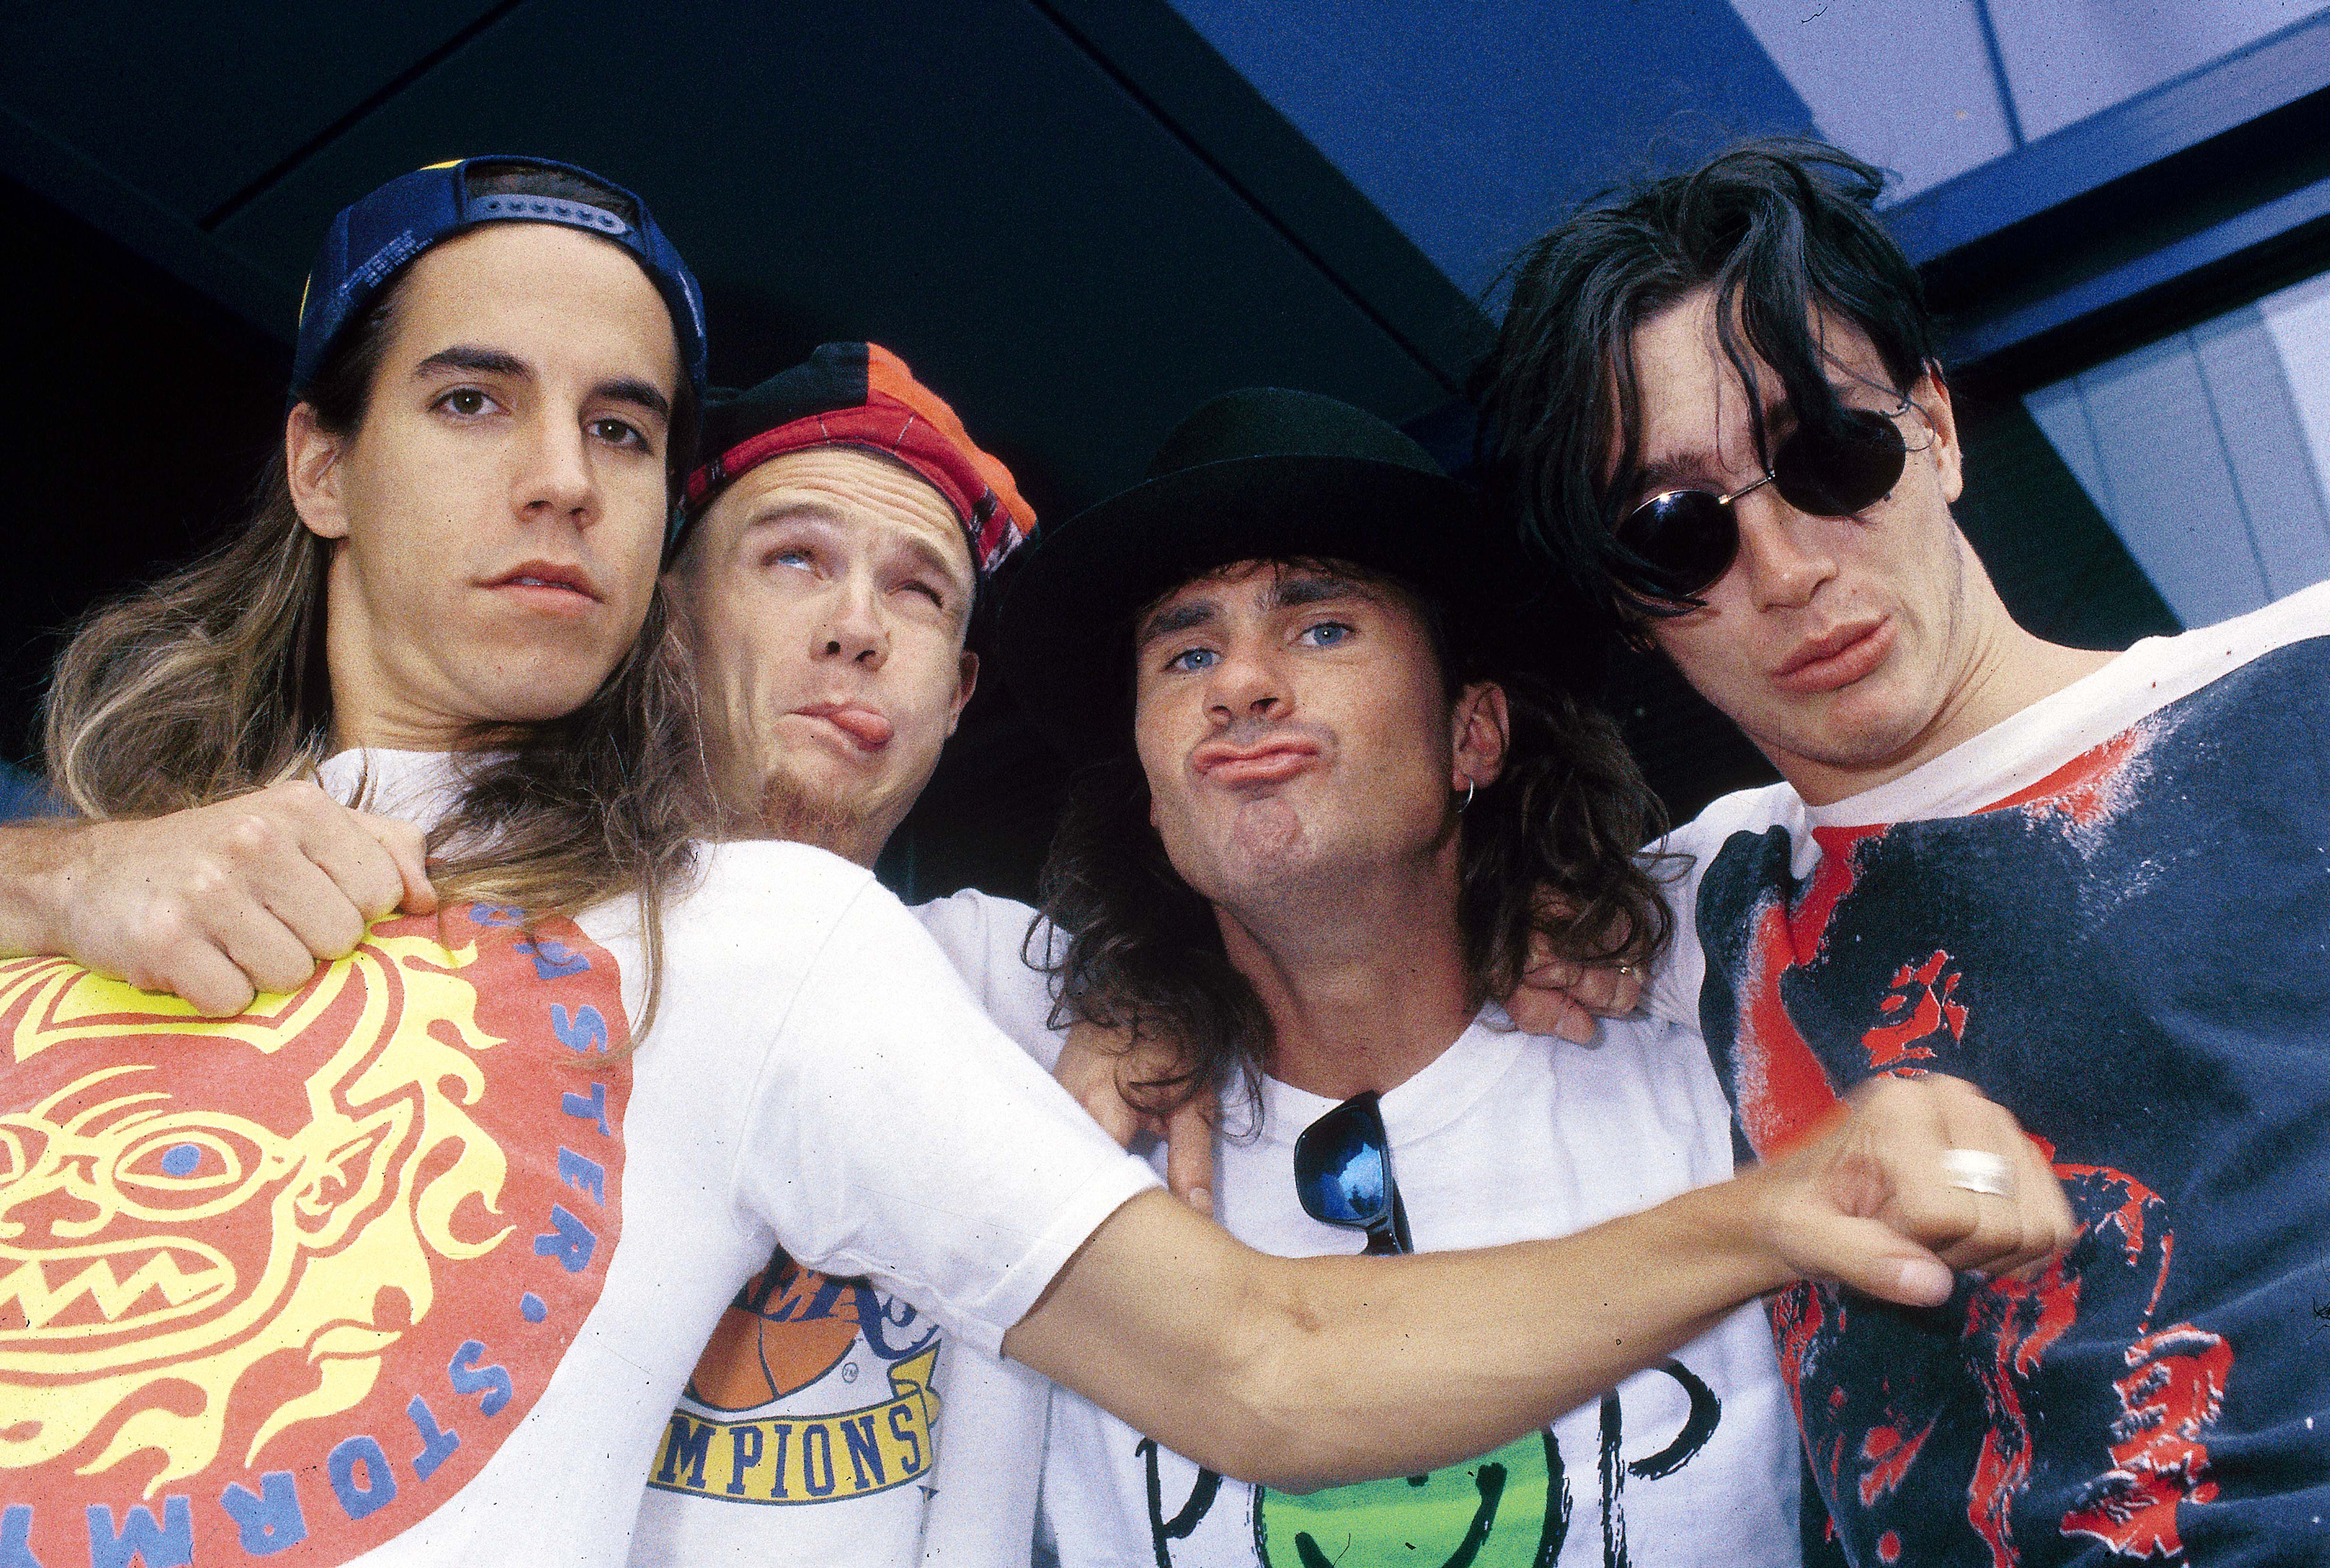 The latest tweets from red hot chilipeppers (@chilipeppers). The Worst Live Performances by Great Rock Bands